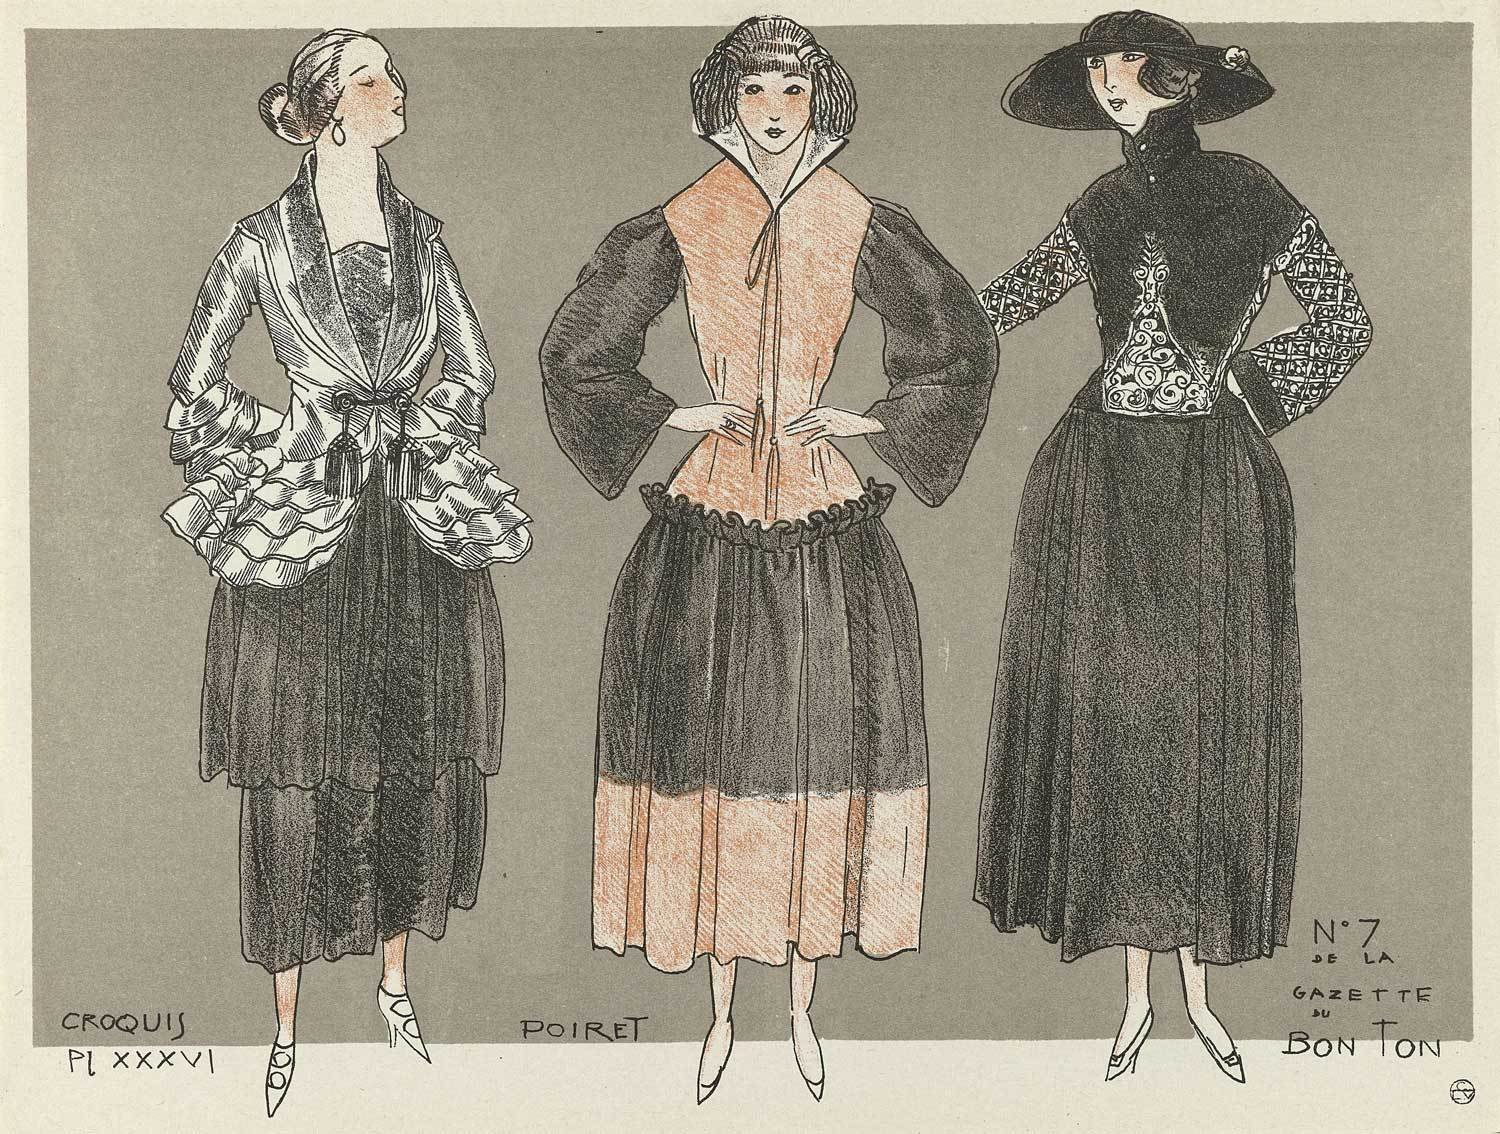 [Three women dressed in gowns by Paul Poiret] in Gazette du Bon Ton, 1920 - No. 7, Paul Poiret (design), Jean-Louis Boussingault (artwork), Rijksmuseum, Public Domain Mark